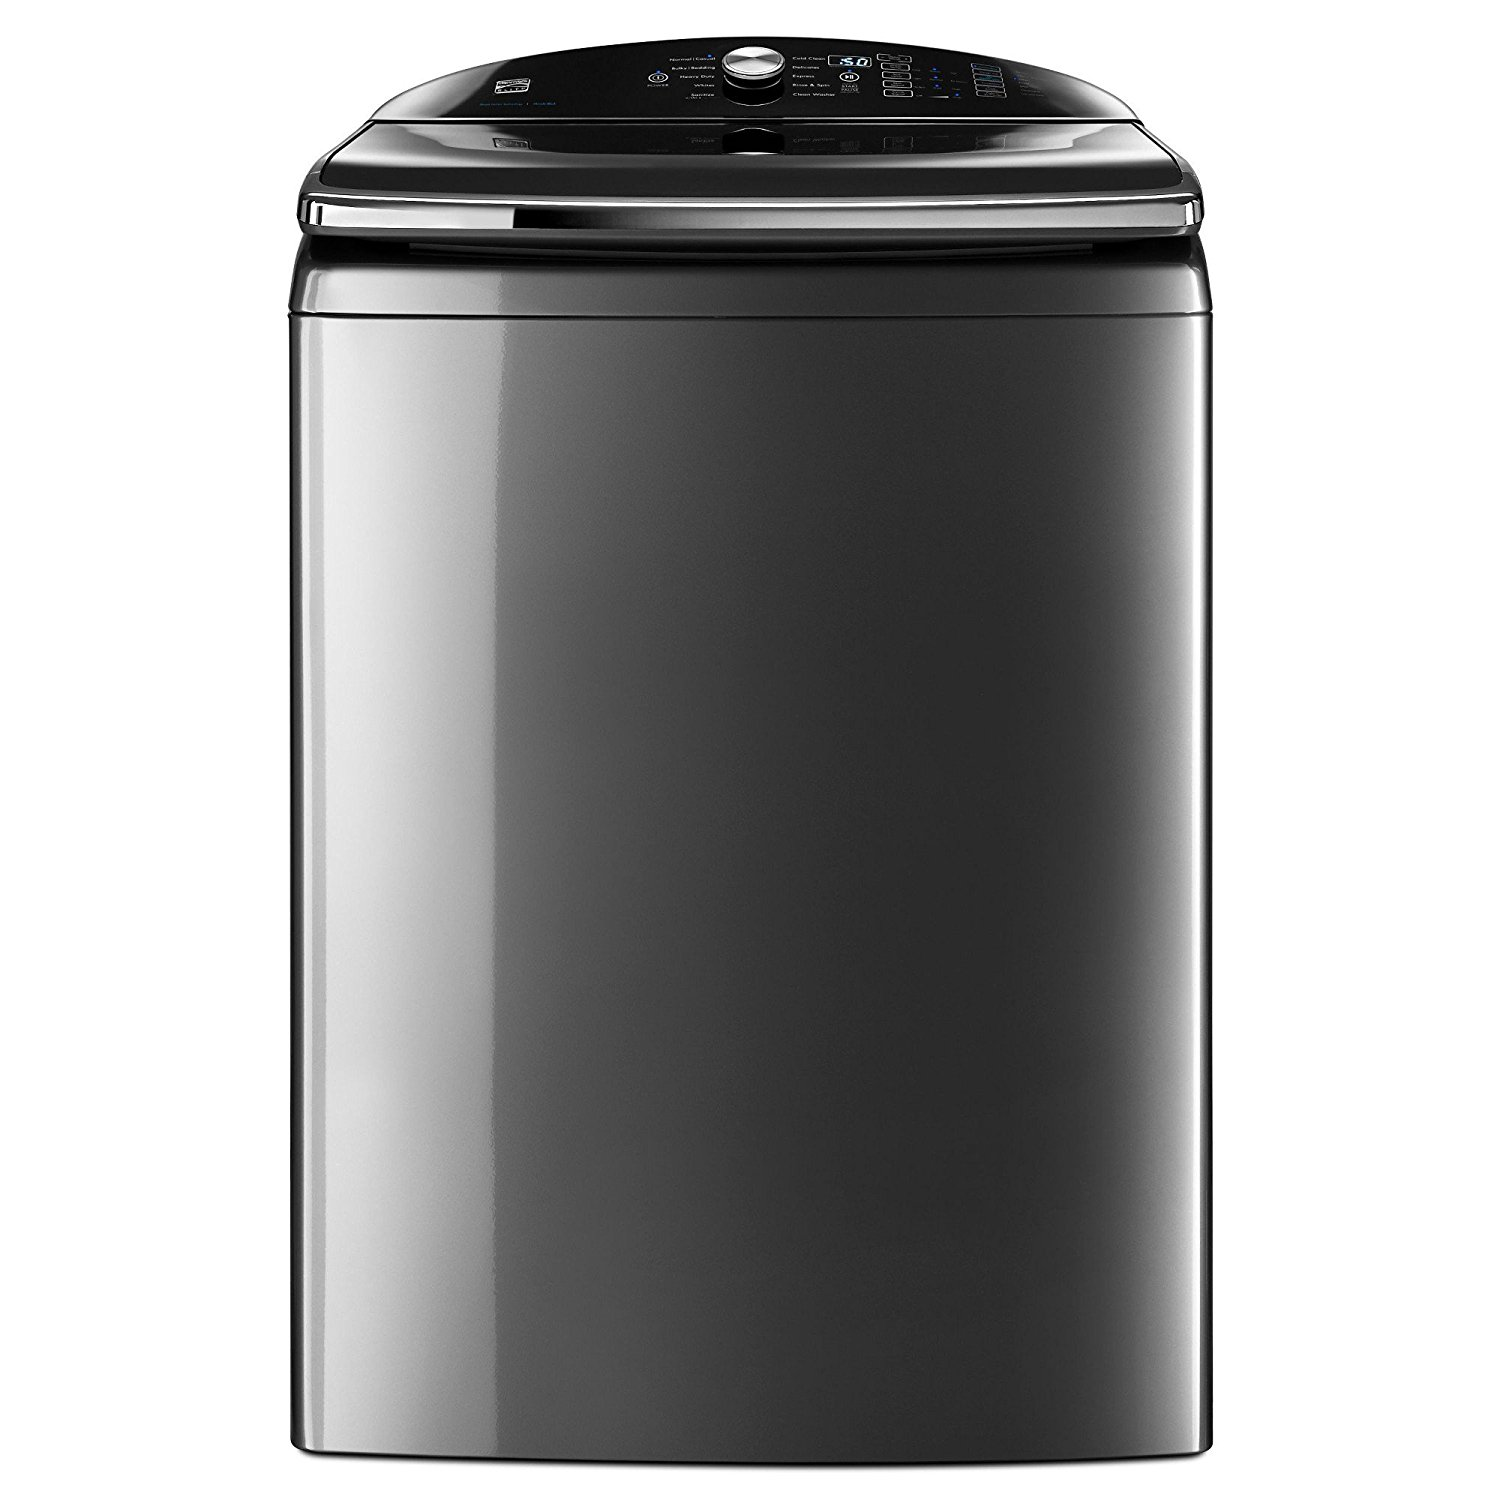 Top 3 Best Top Load Washers In 2019 Reviews 2019 40